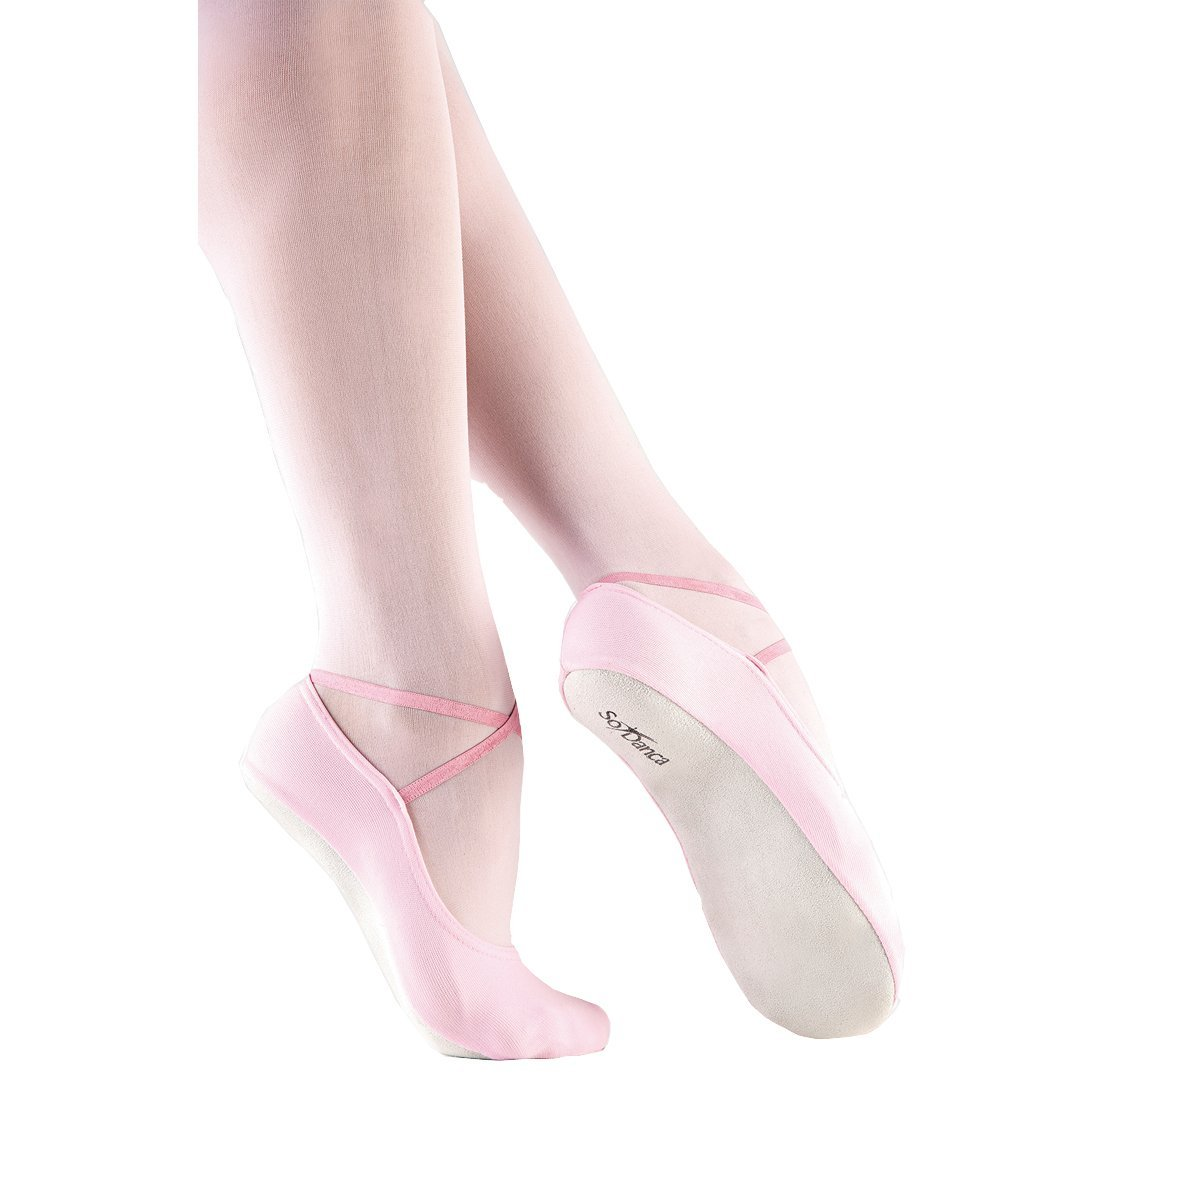 Sodanca Ba-40a Adult Dani Ballet Slipper